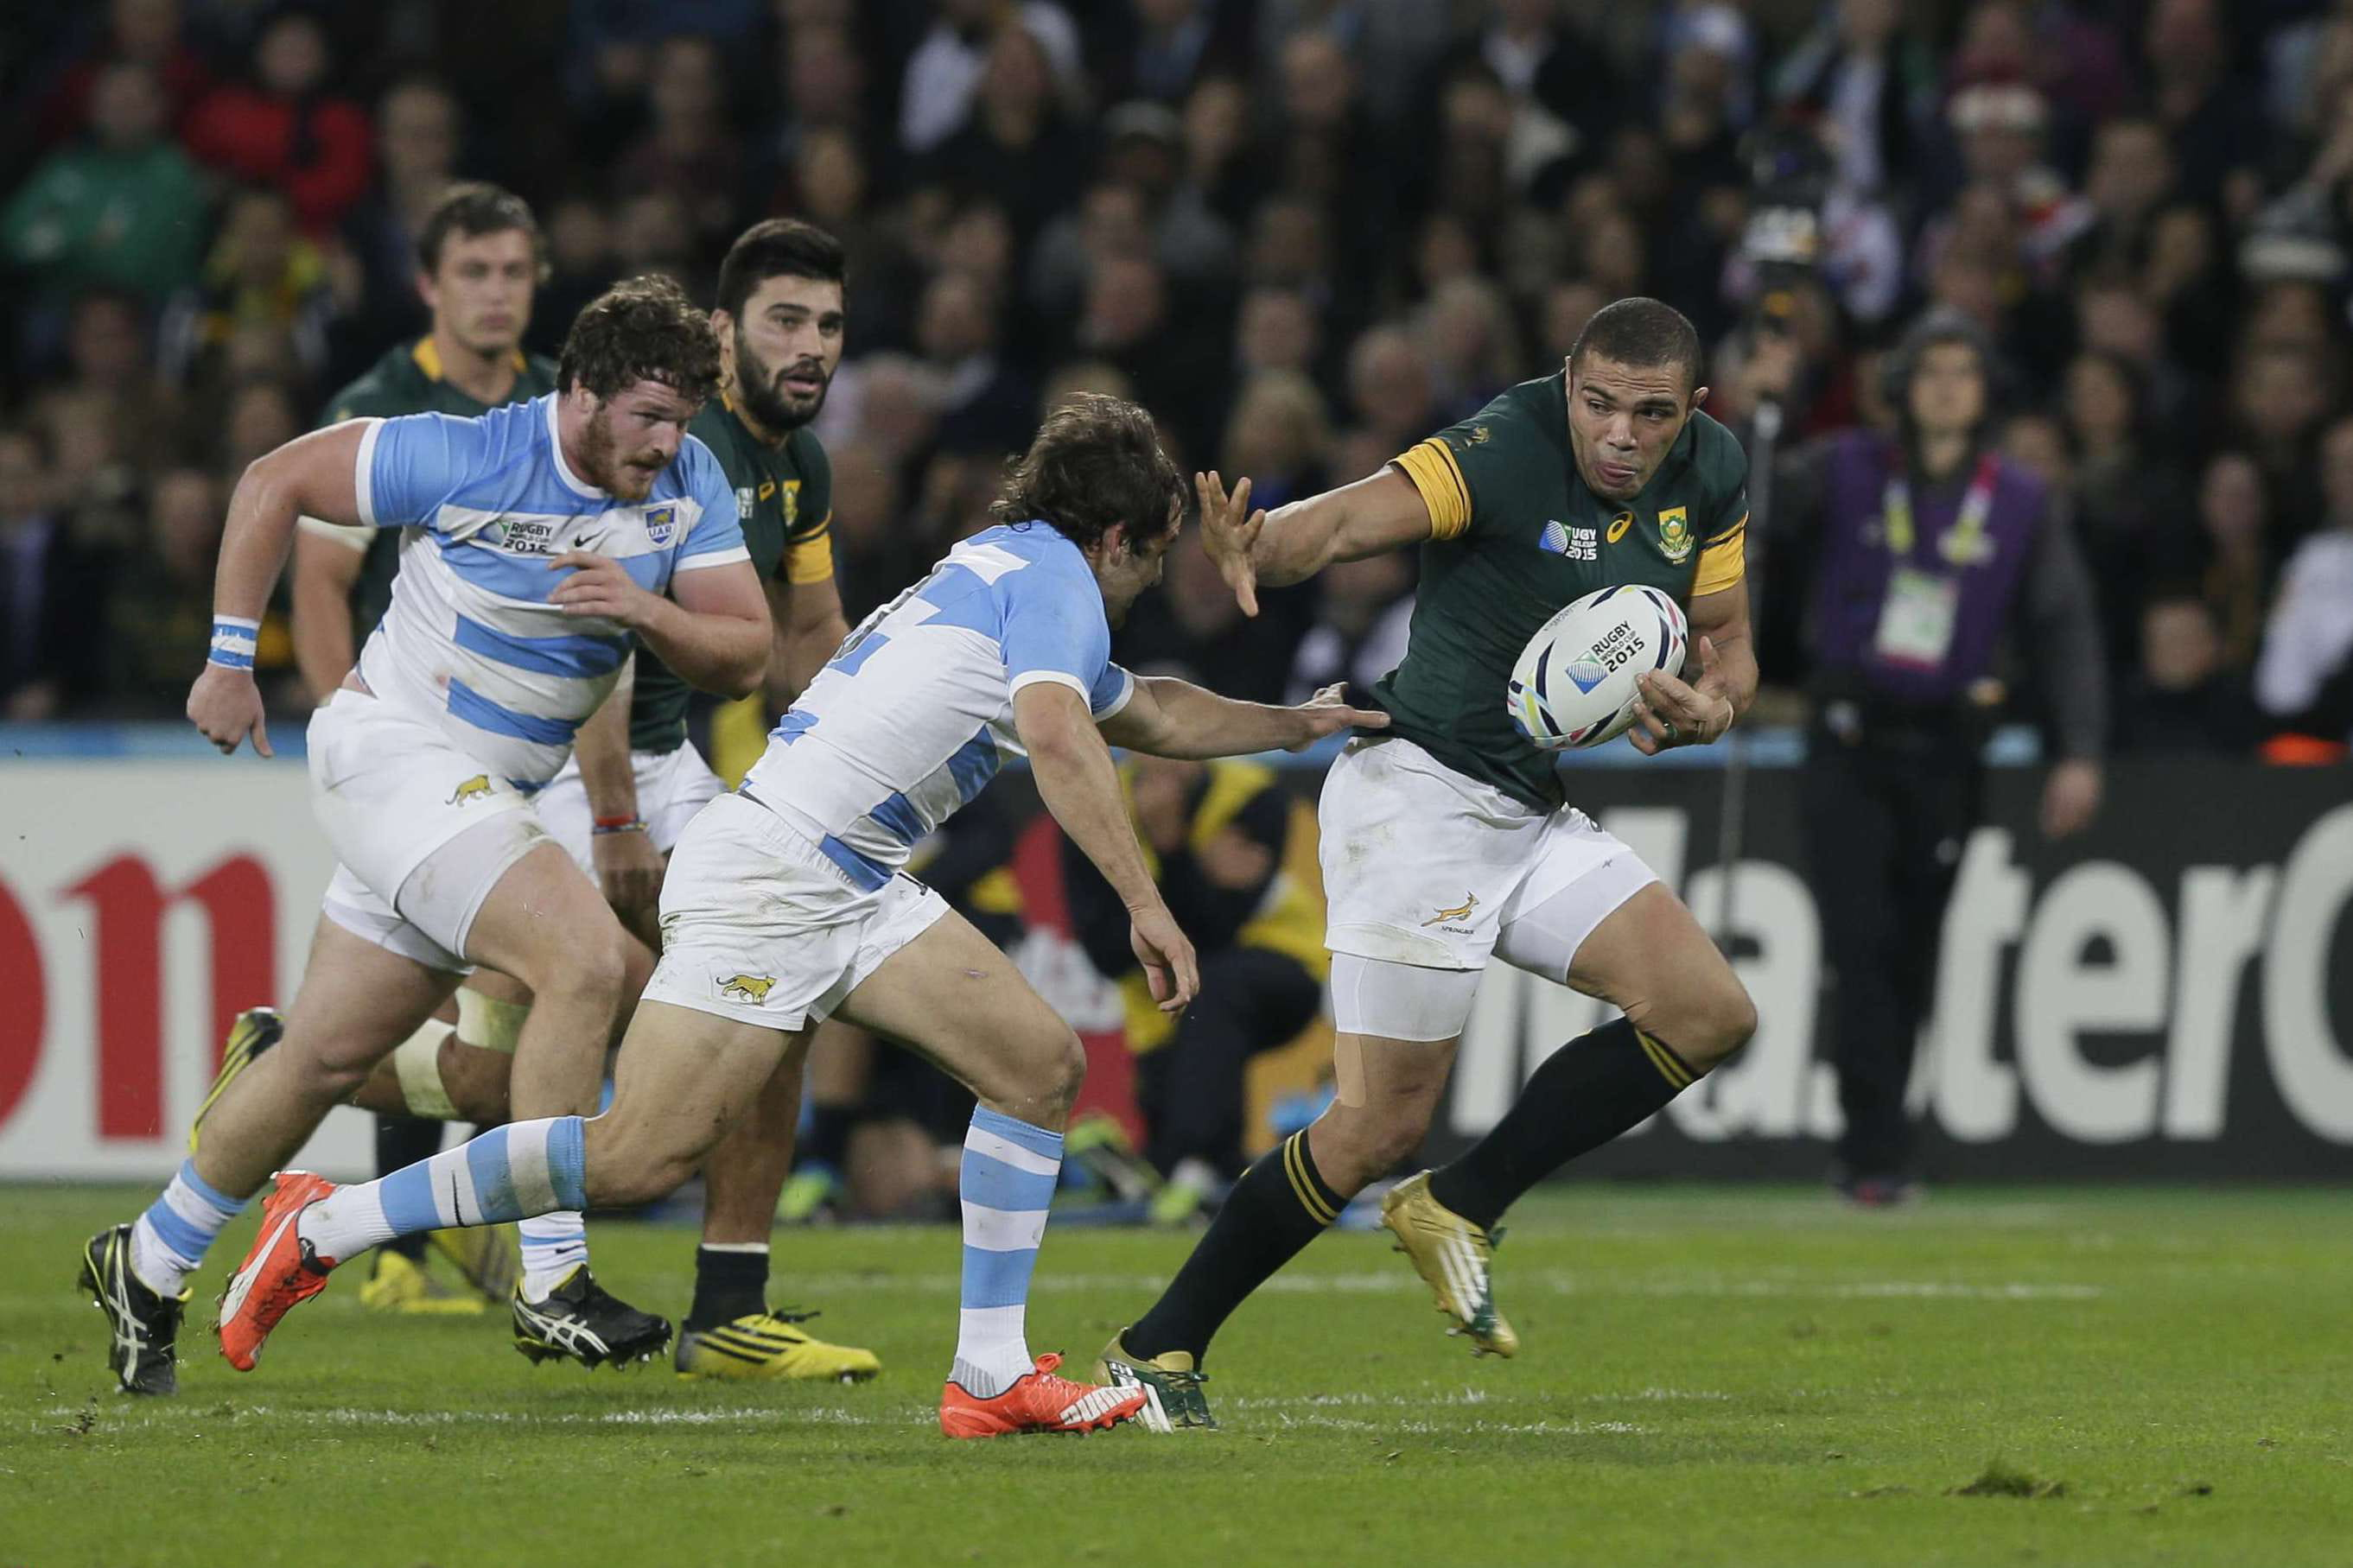 Petite finale rugby - Finale coupe du monde rugby ...